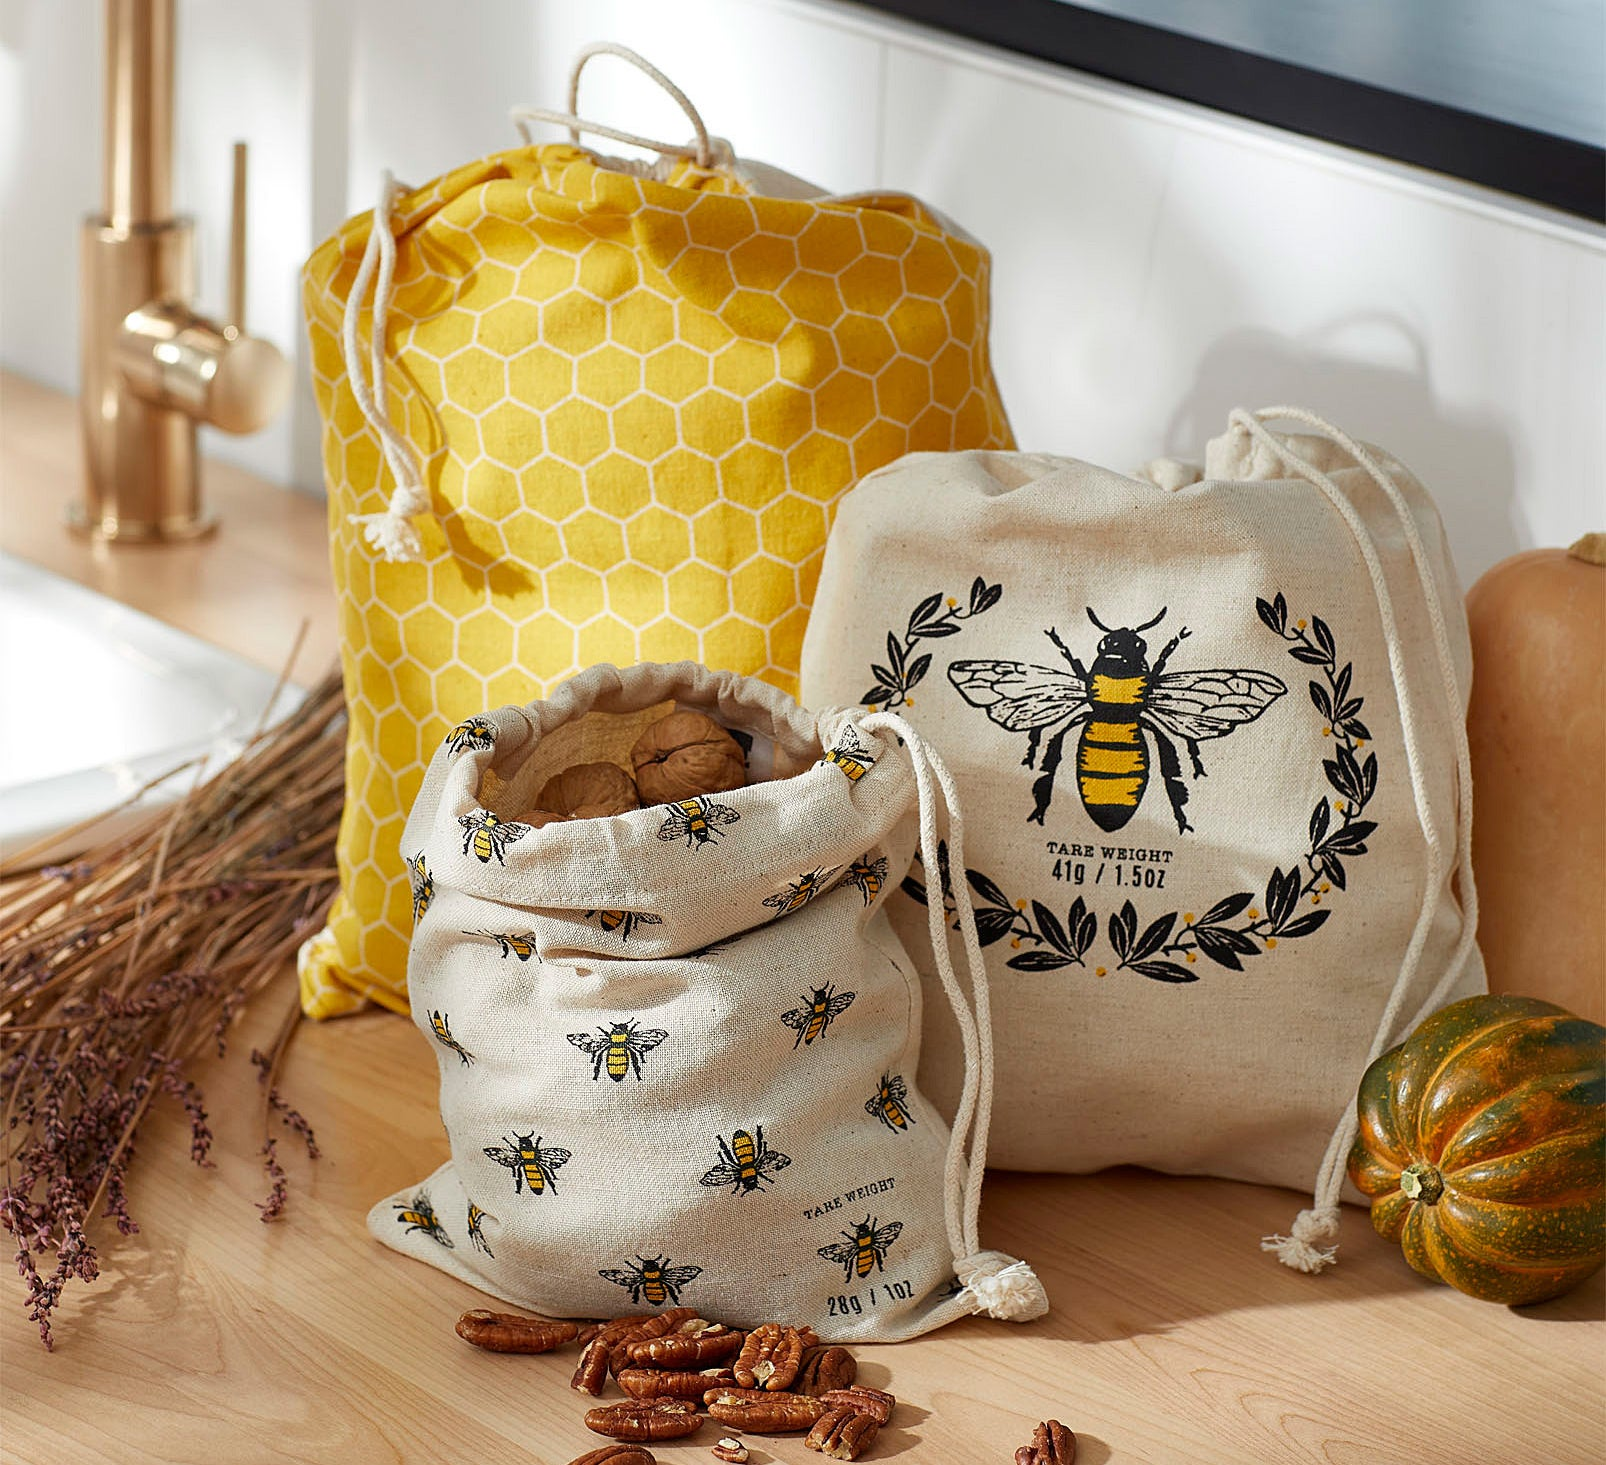 Three bee-themed bags with drawstrings on a counter